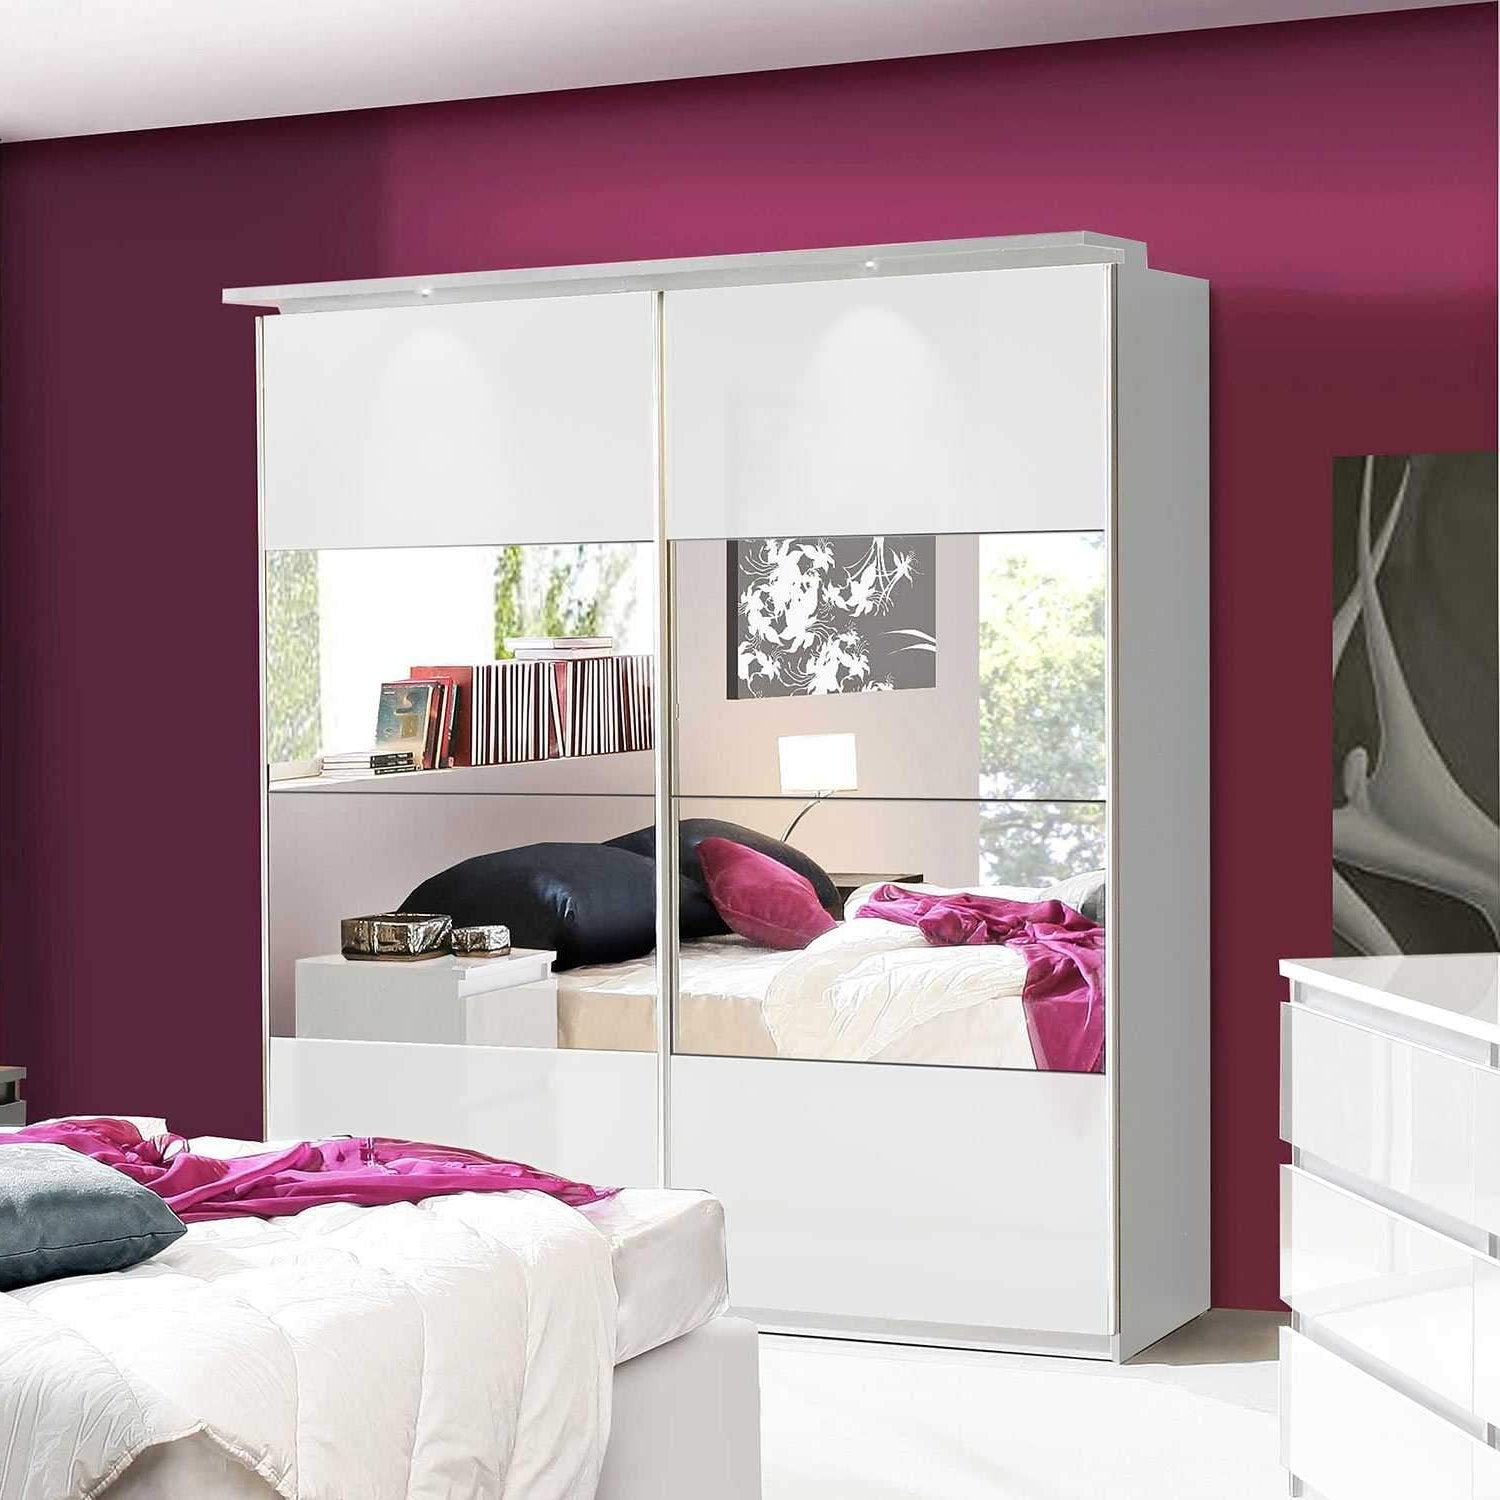 Laurence 170cm Wardrobe With Mirrored Sliding Doors In White Gloss